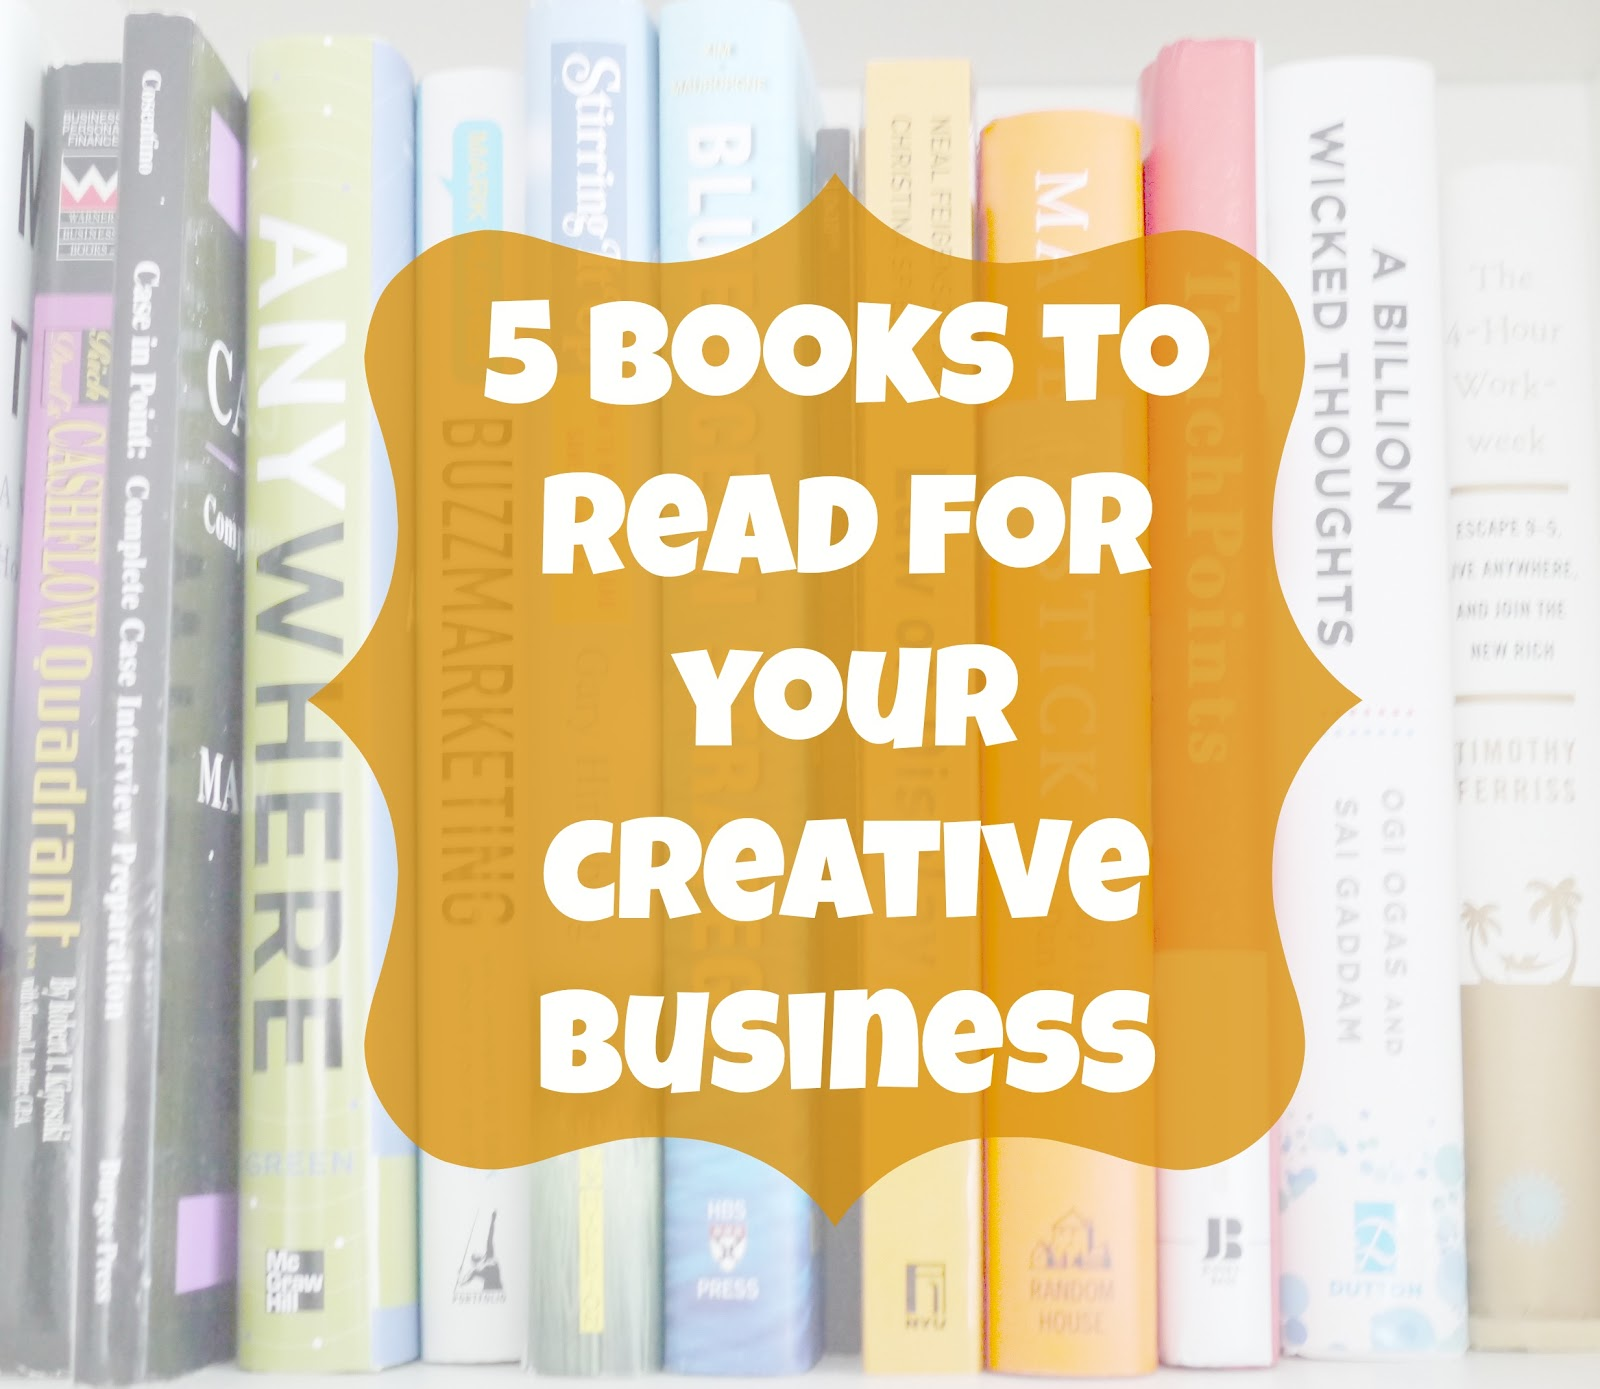 5 books to read for your small business